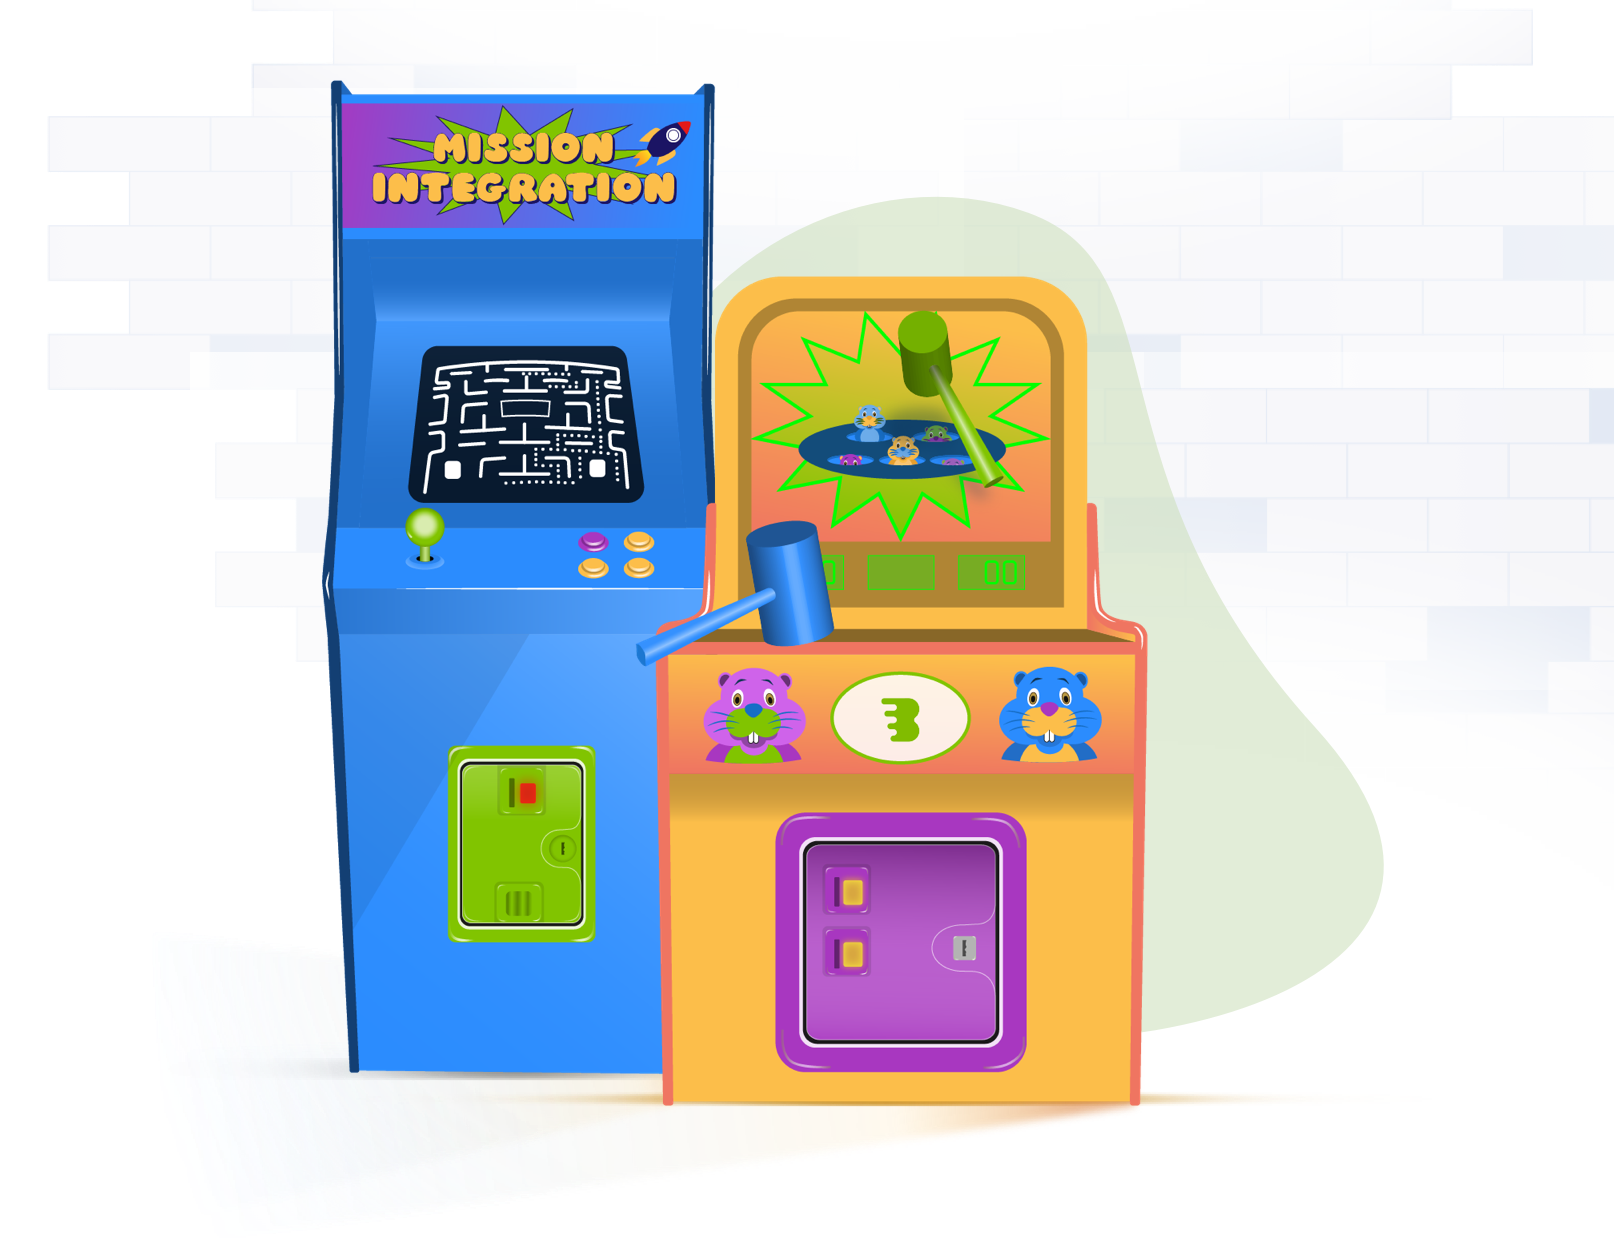 arcade-game-illustrations-showing-digital-promotions